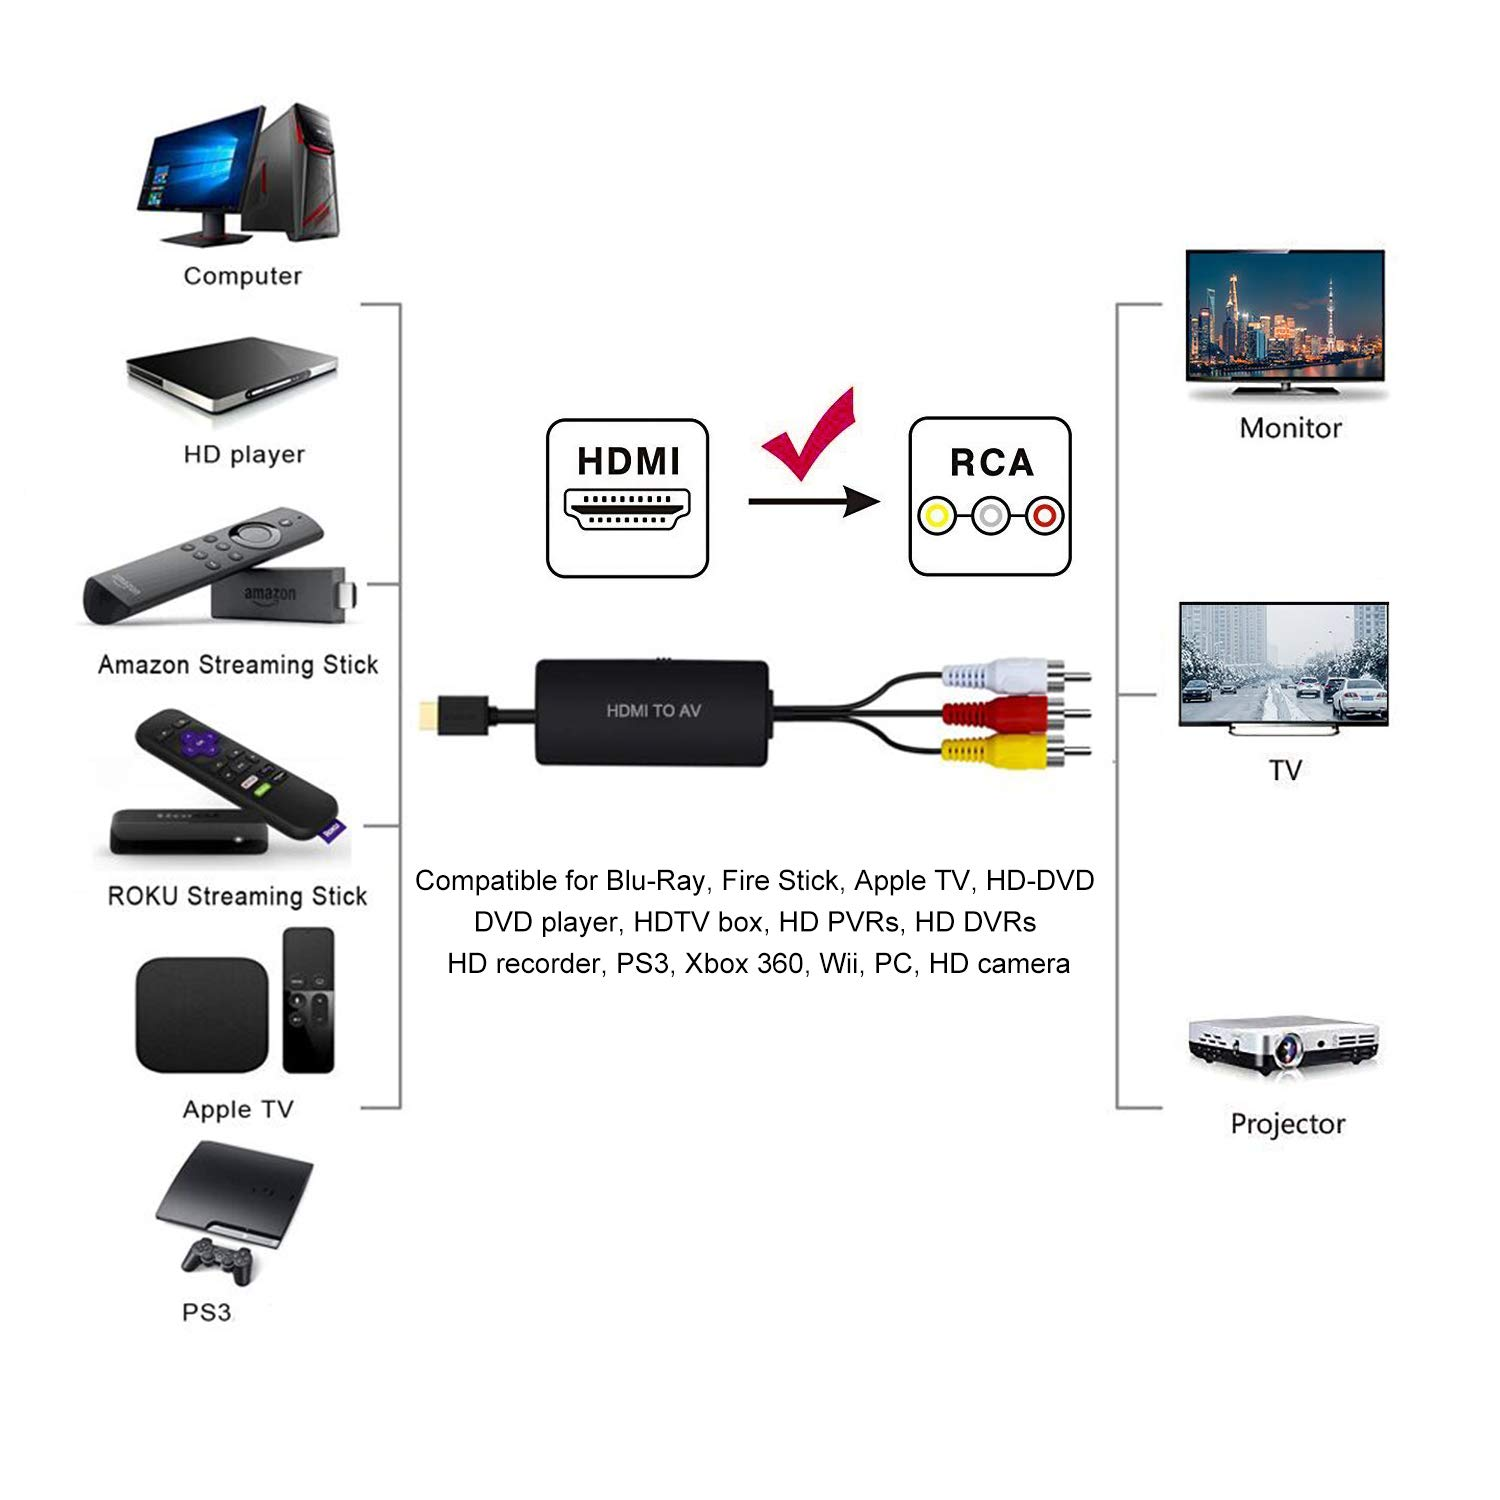 1080P HDMI to AV, HDMI to Composite Converter Adapter HDMI to RCA Support PAL/NTSC, Suitable for PC Laptop Blue-Ray PS3 Apple TV HD TV (1080P HDMI to AV) by RuiPuo (Image #4)